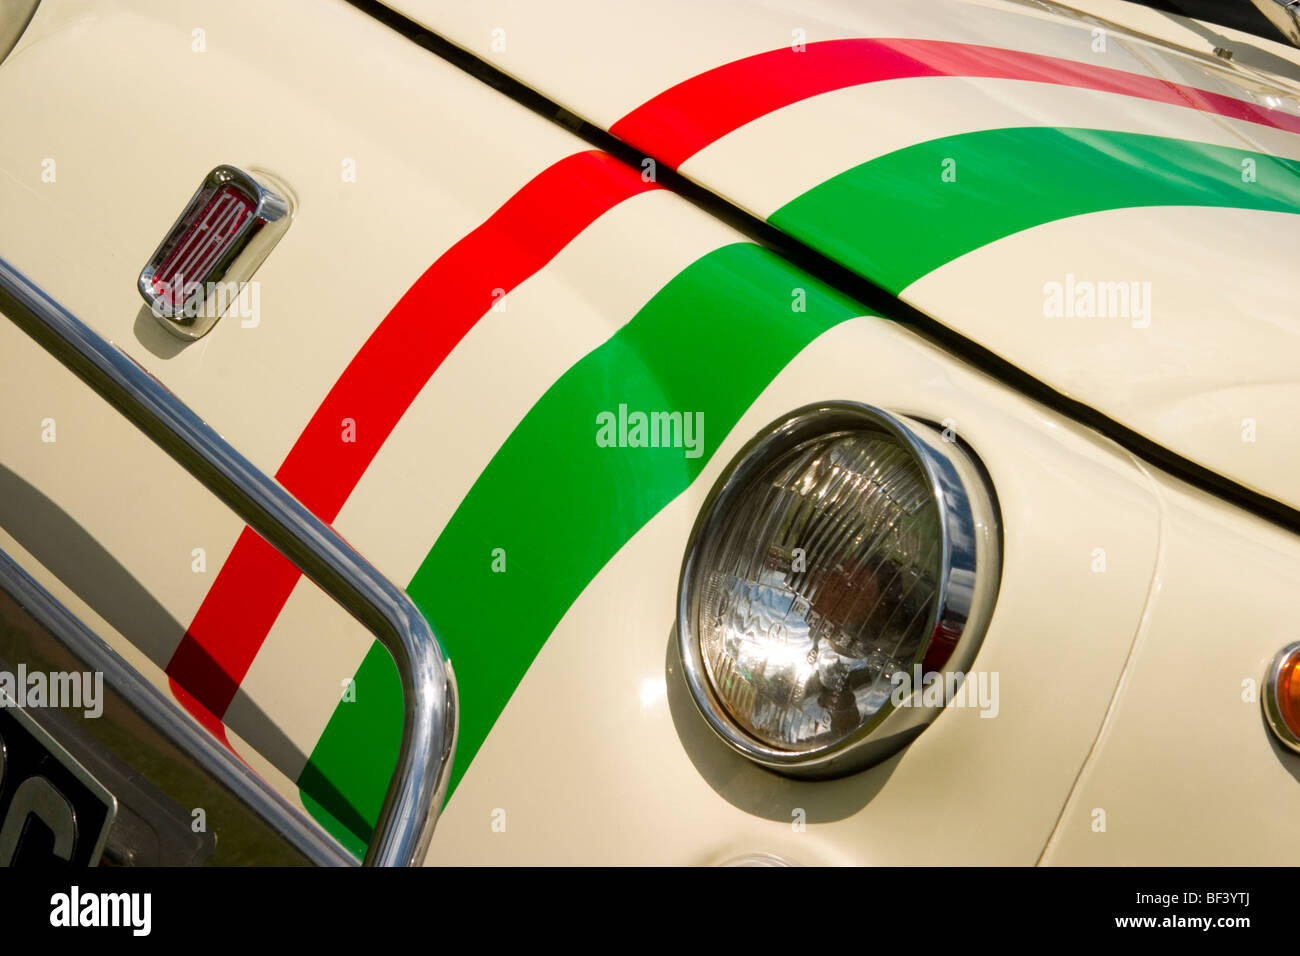 Headlight and badge of Fiat 500 with Italian stripes - Stock Image